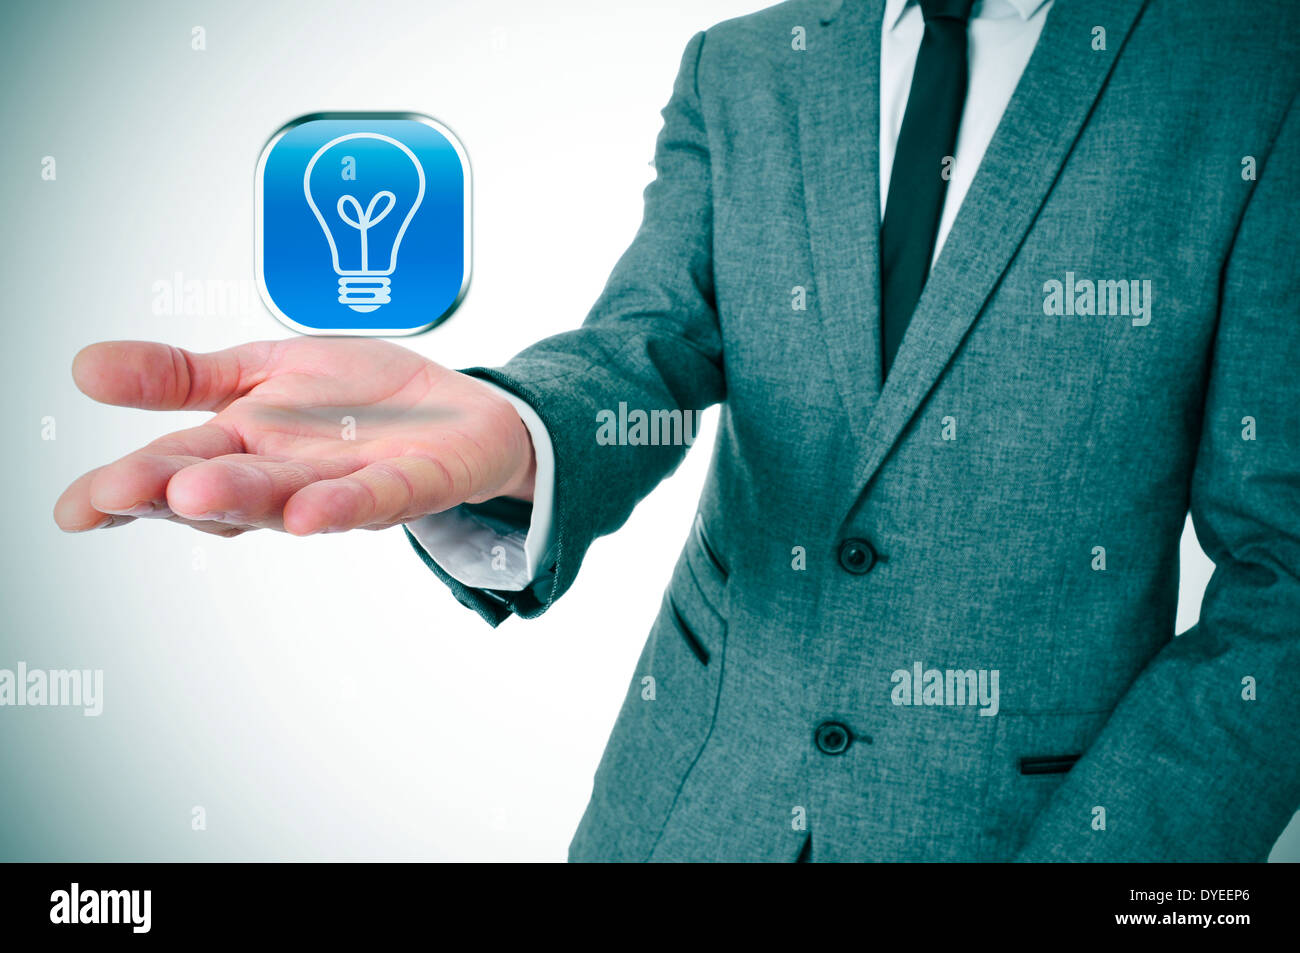 man wearing a suit with an icon with a light bulb in his hand - Stock Image